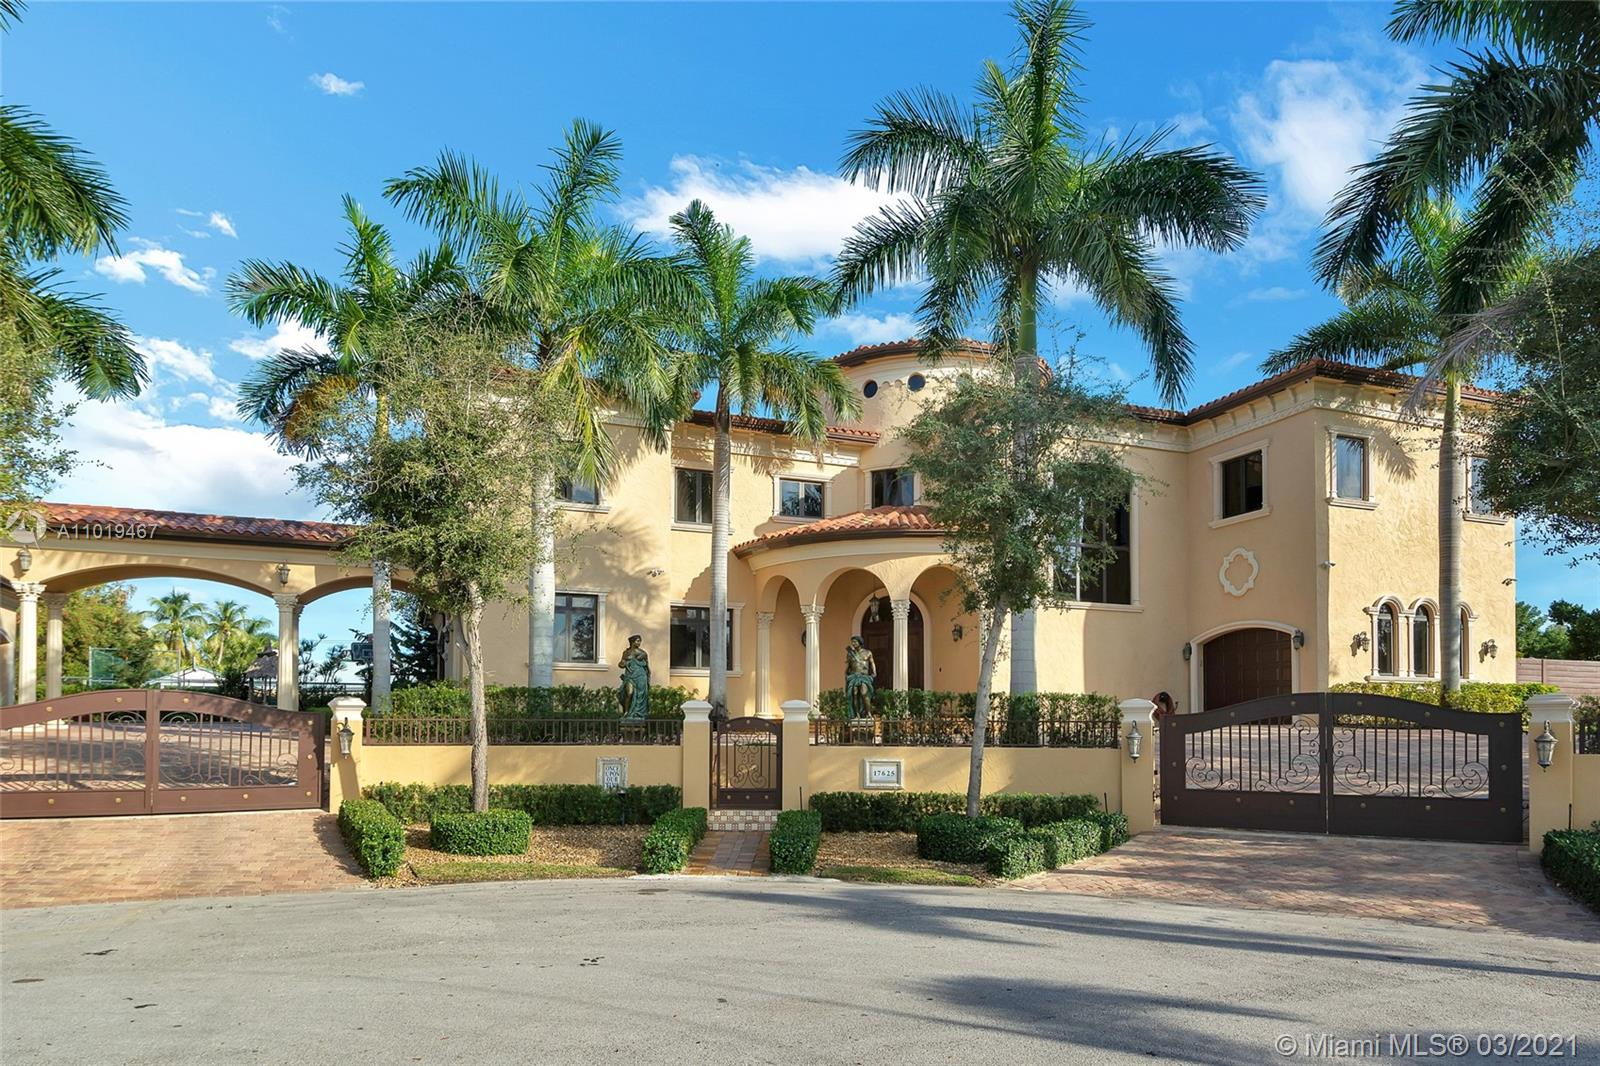 THIS MILLIONAIRE'S HIDEAWAY BUILT TO DEMANDING SPECIFICATIONS, NO EXPENSE SPARED, EXQUISITELY DESIGNED FOR AN OPULENT LIFESTYLE. EASY ACCESS TO THE MARINA, NUMEROUS FEATURES INCLUDING: TRAY CEILING, CUSTOM MILL WORK, HICKORY WOOD, AND EXQUISITE MARBLE FLOORING, SOLID CORE DOORS, WINE CELLAR, BUTLERS PANTRY, IMPACT WINDOWS AND DOORS, ETC. ALL TOP OF THE LINE APPLIANCES HEATED POOL. ROTUNDA ENTRANCE TO A SUPERBLY DESIGNED MASTER SUITE. FINANCING TERMS AS FOLLOWS 25% DOWN, 5% INTEREST FOR 15 YEARS FIXED, NO PREPAYMENT PENALTIES.